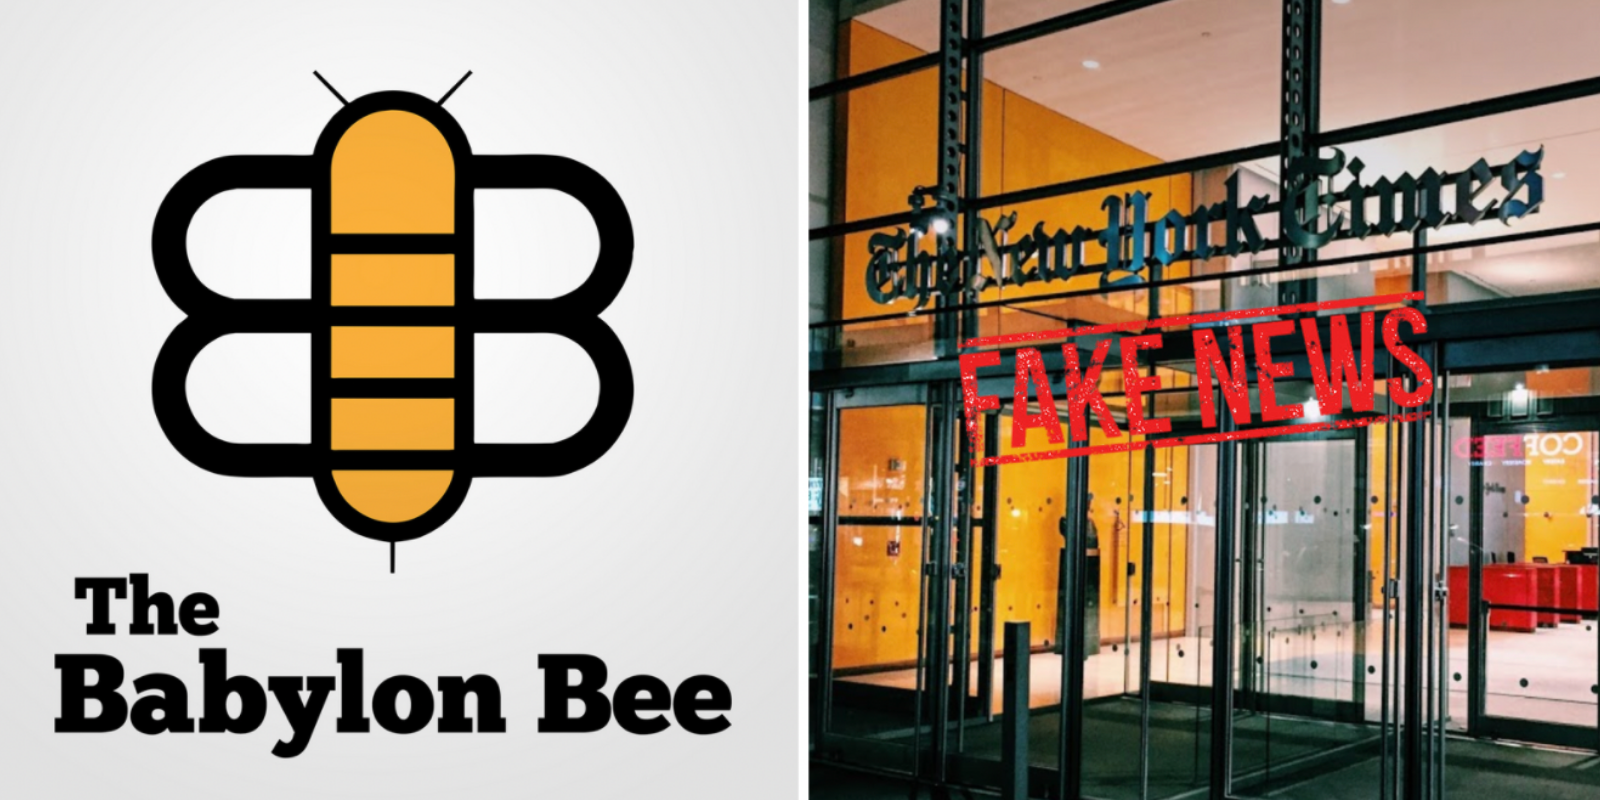 BREAKING: NY Times retracts false claim that smeared The Babylon Bee as 'far-right misinformation'